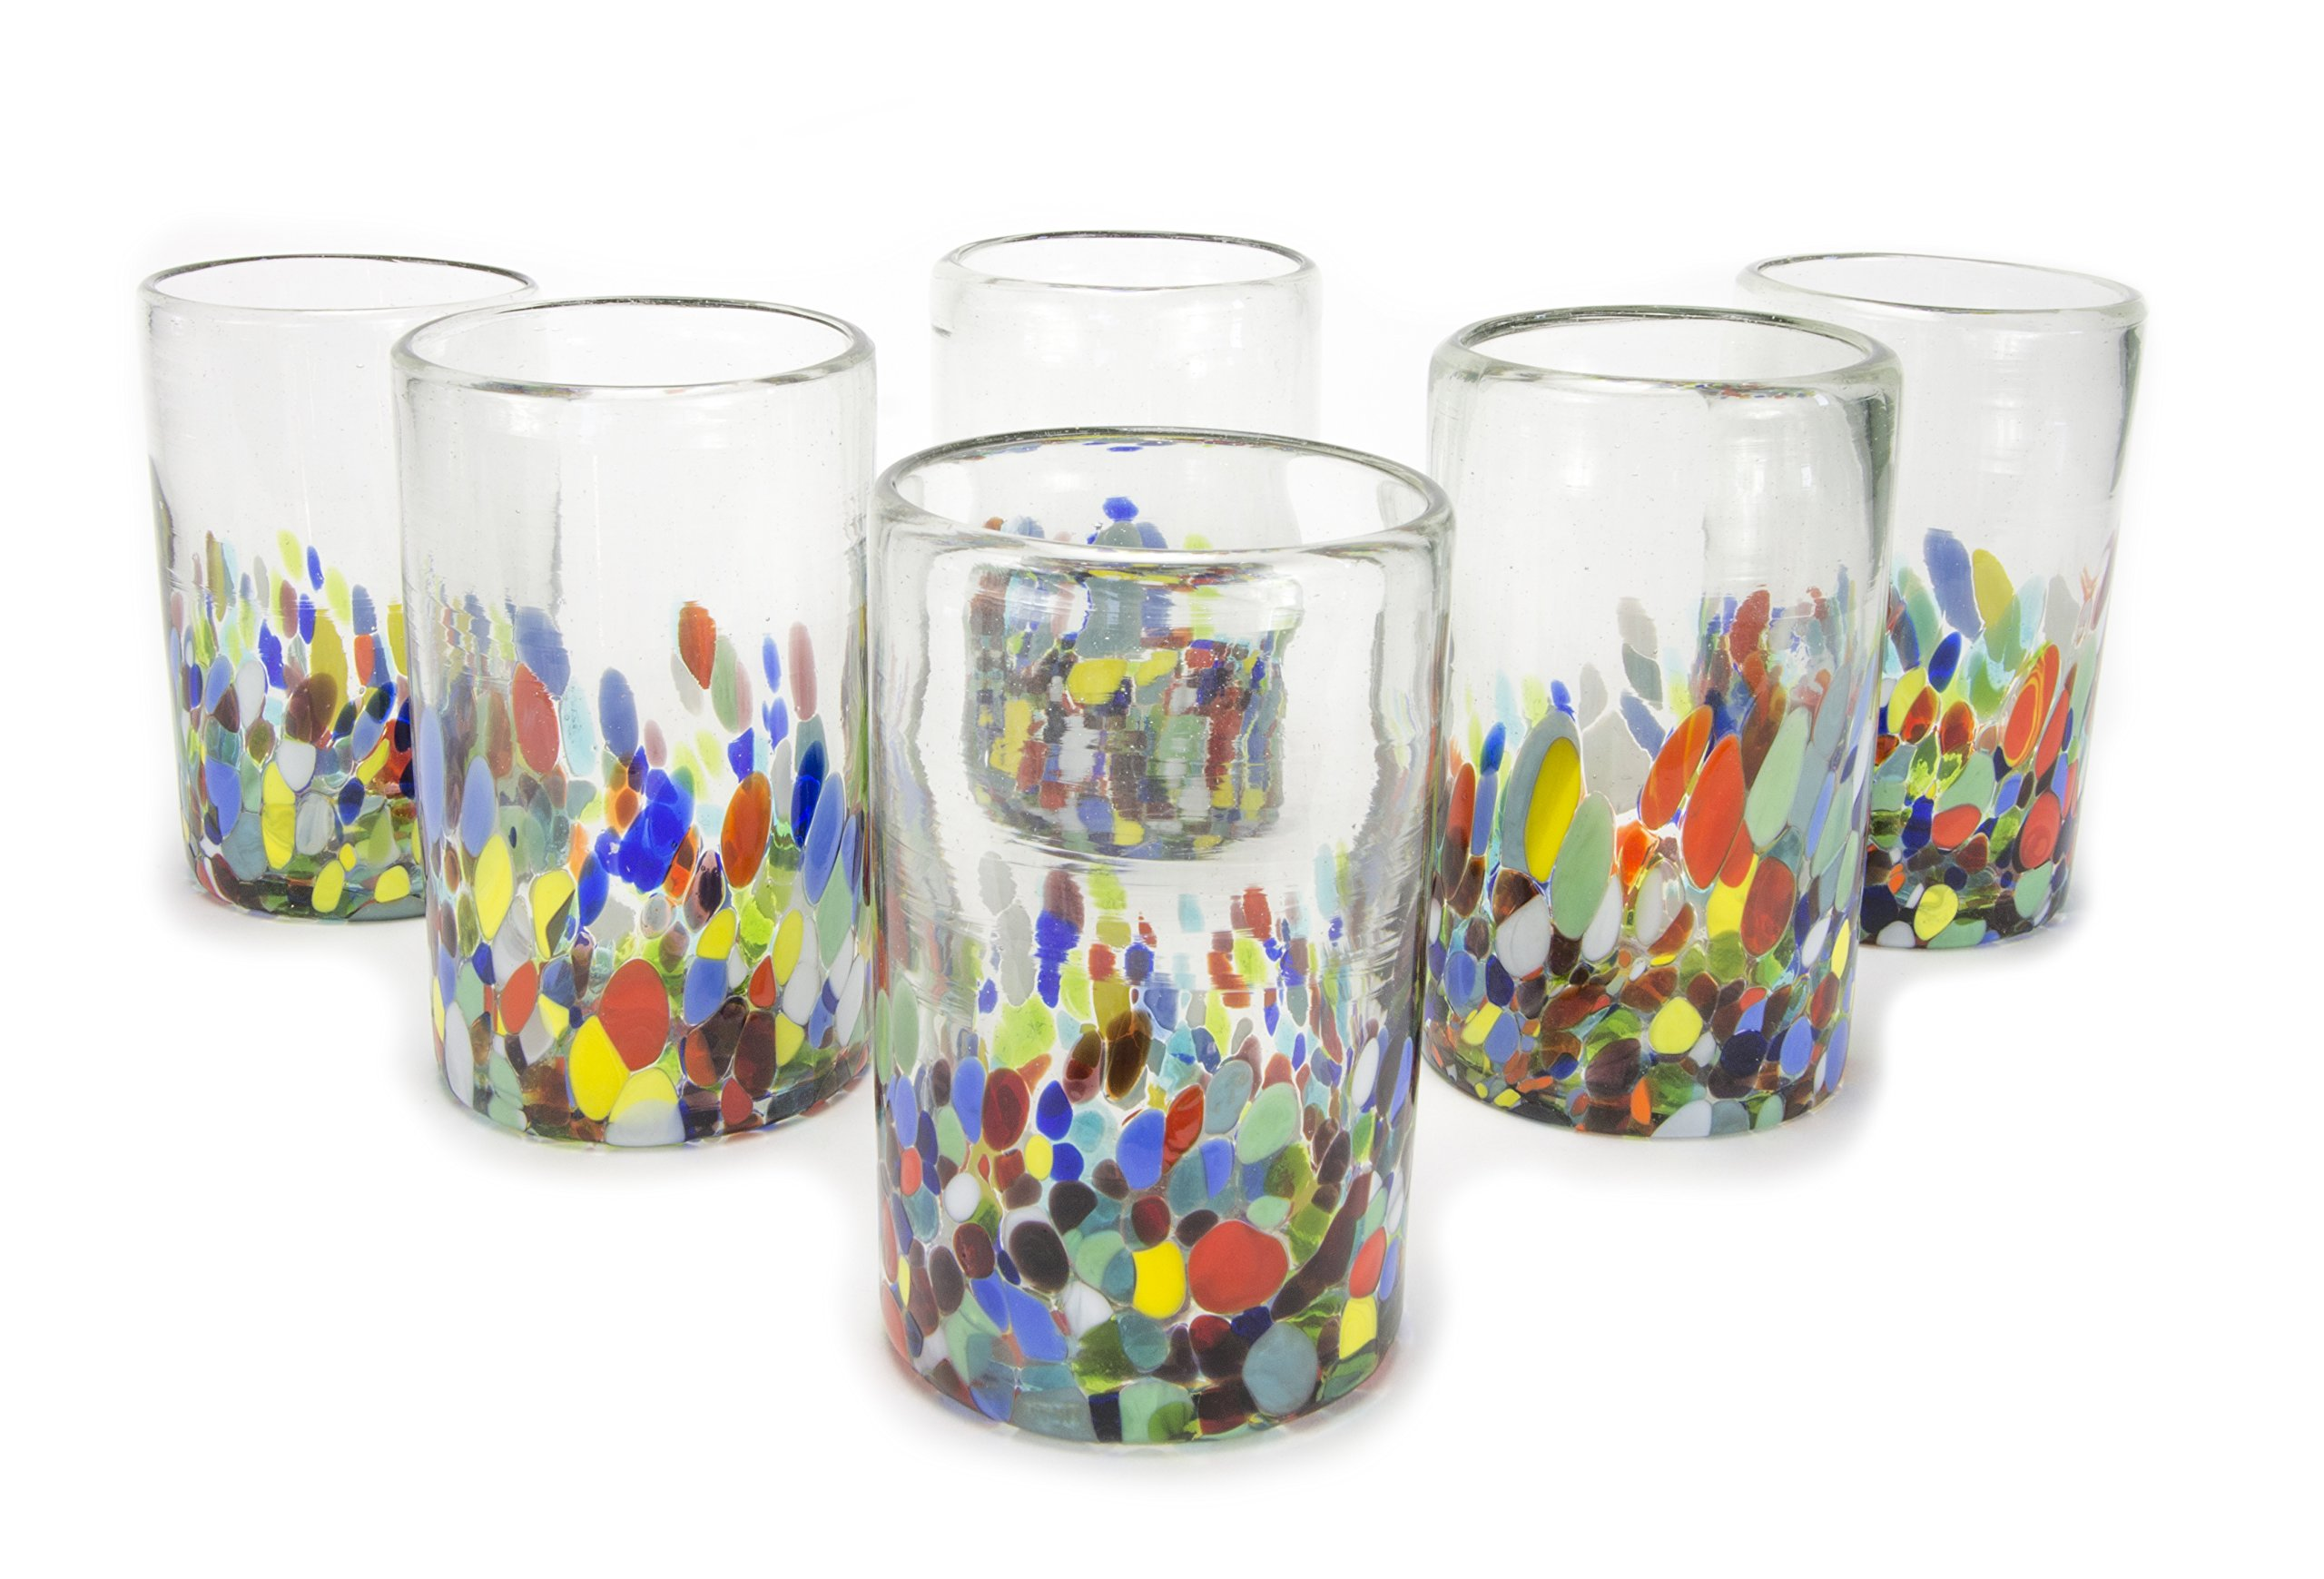 MEXART Artisan Crafted Multicolor Hand Blown Recycled Glass Water 14 oz Glasses 'Confetti' (set of 6)